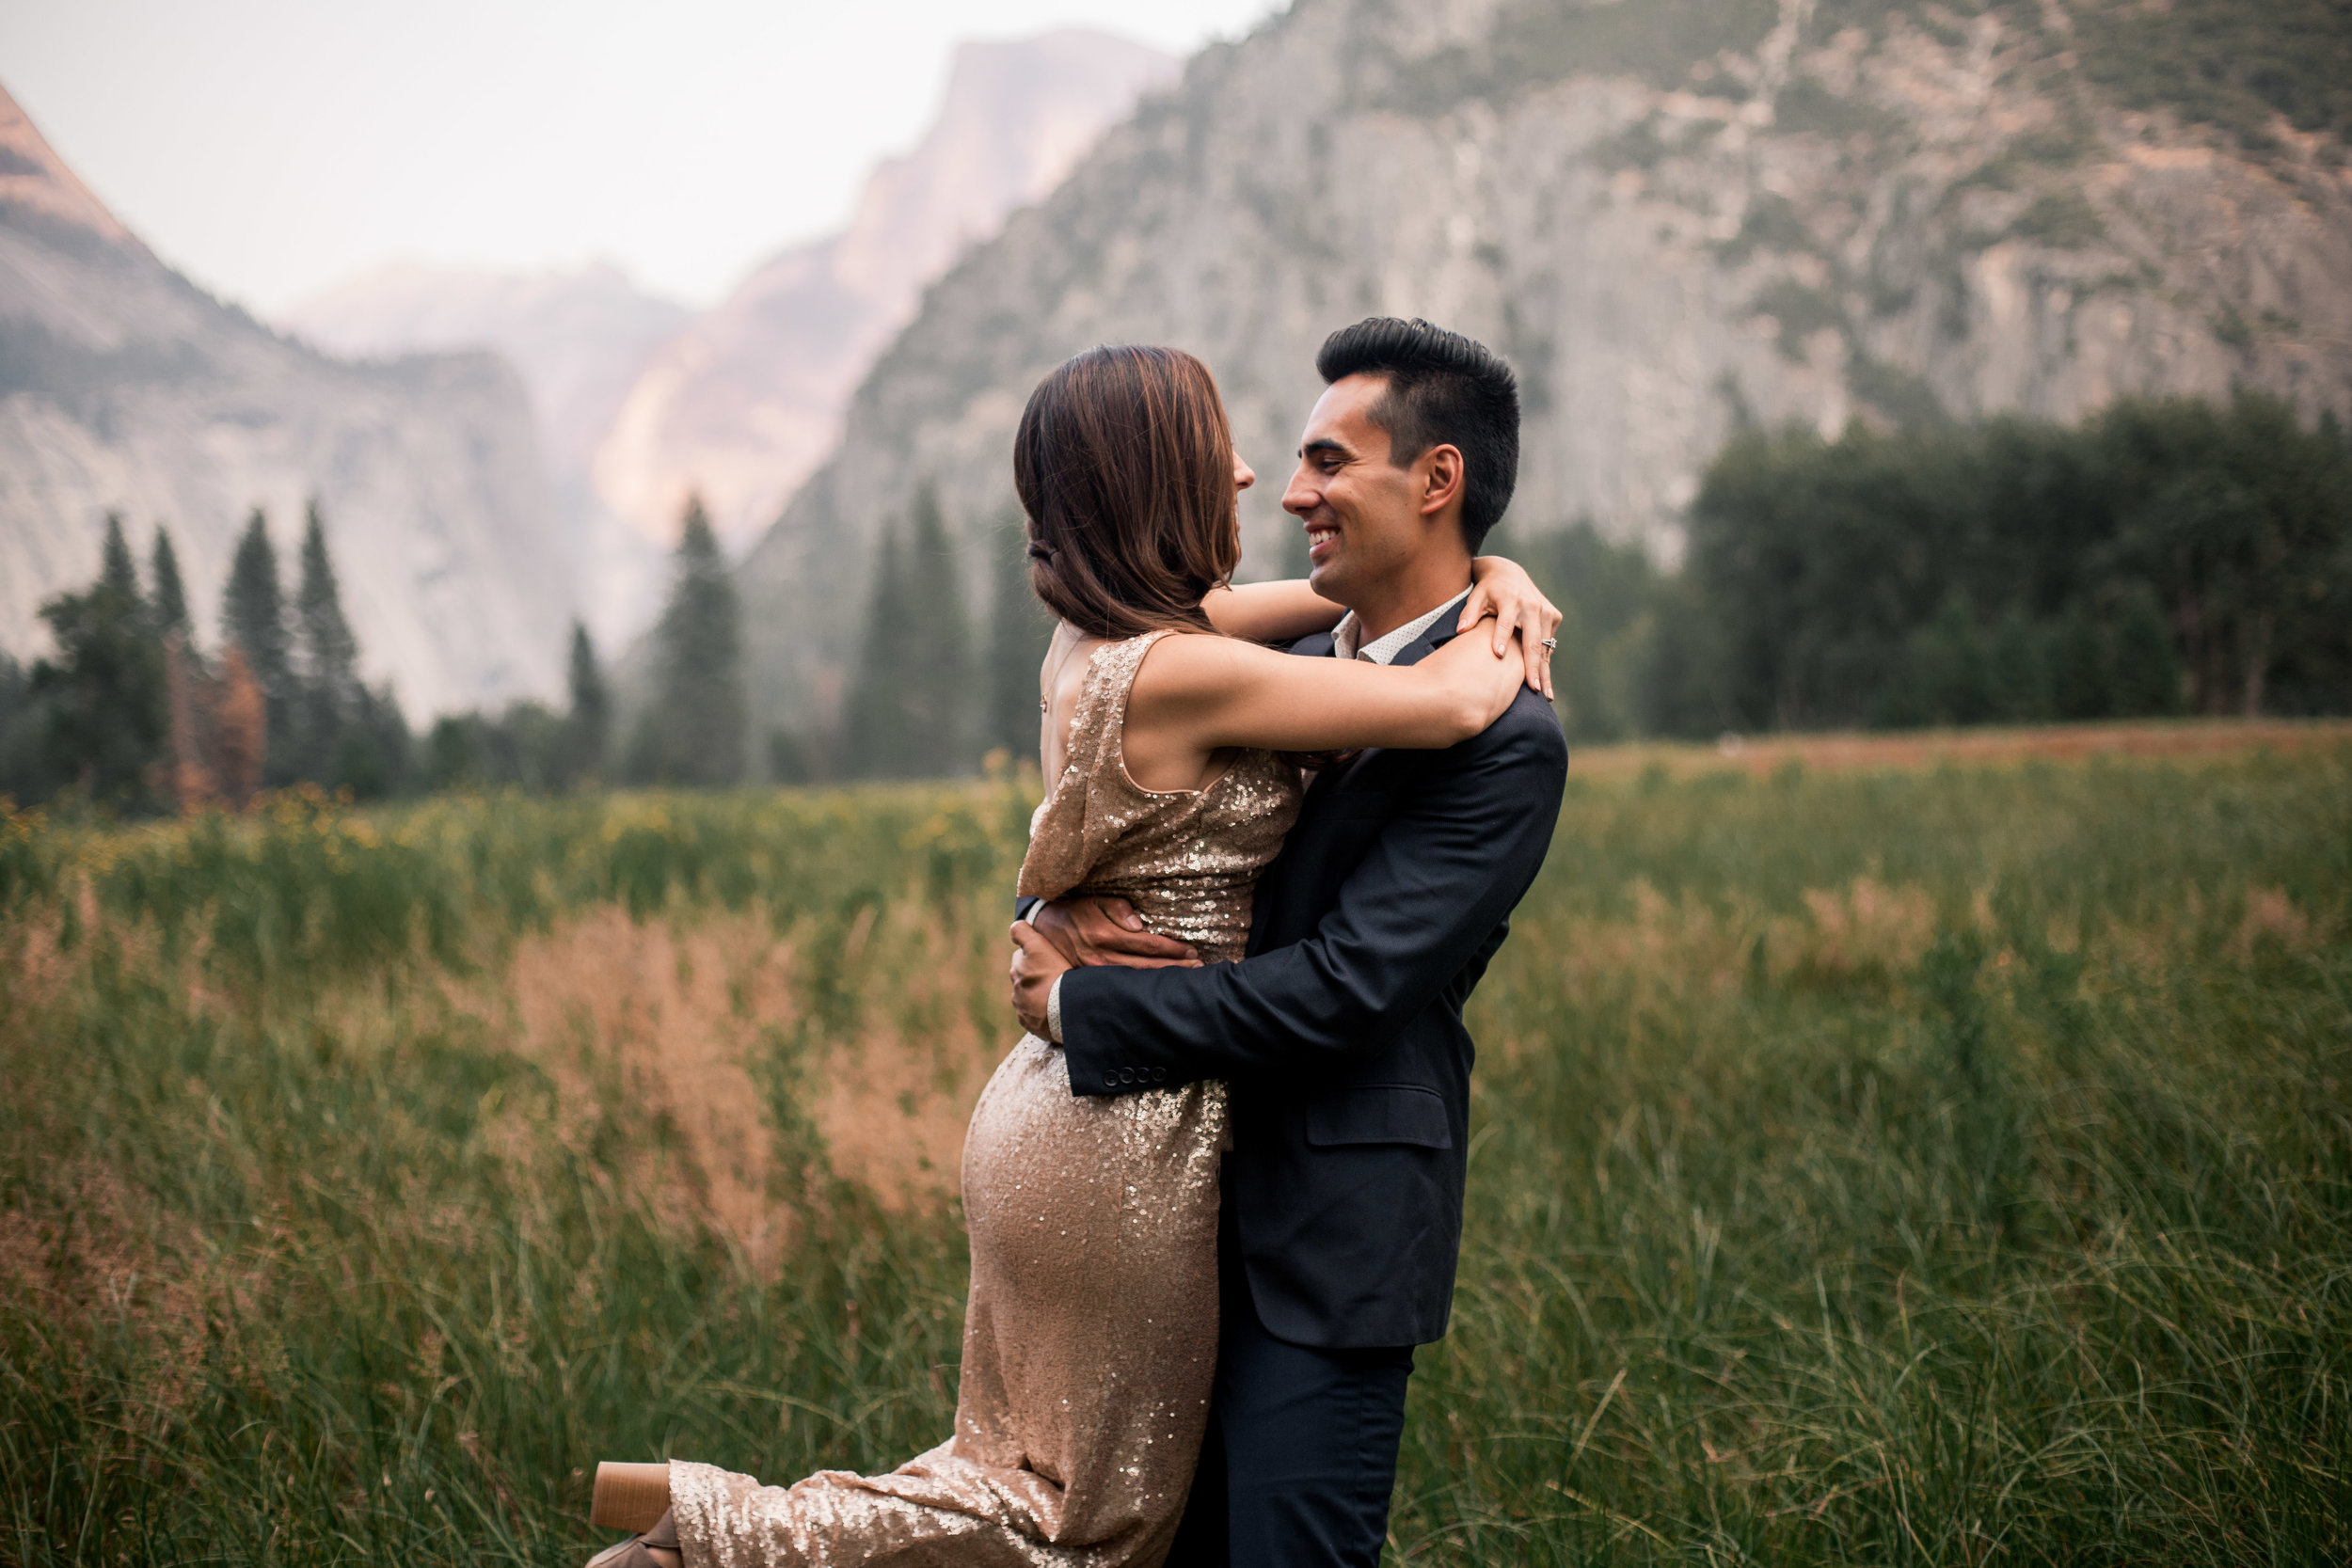 nicole-daacke-photography-yosemite-national-park-adventurous-engagement-session-half-dome-engagement-session-anniversary-photographer-yosemite-elopement-photographer-yosemite-intimate-wedding-photography-24.jpg